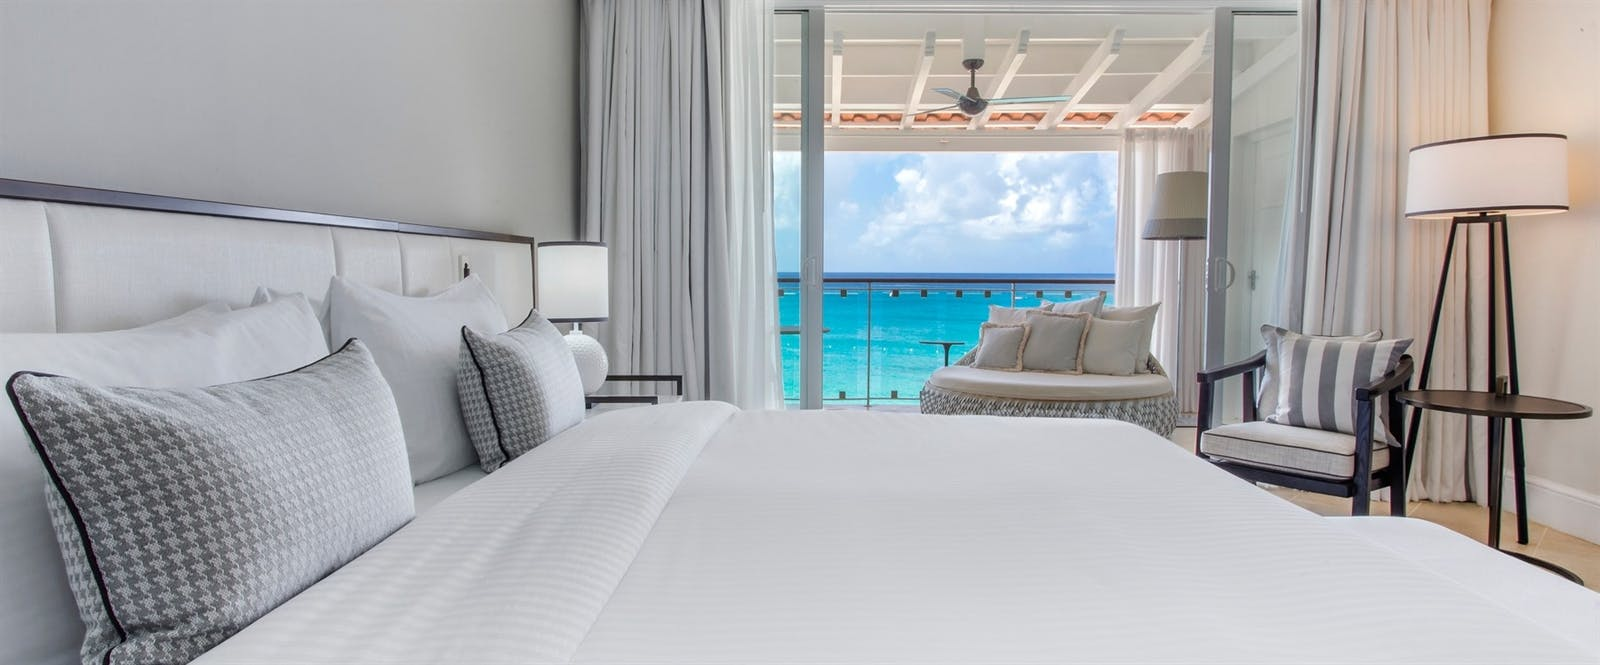 Signature Oceanfront Room at Fairmont Royal Pavilion, Barbados